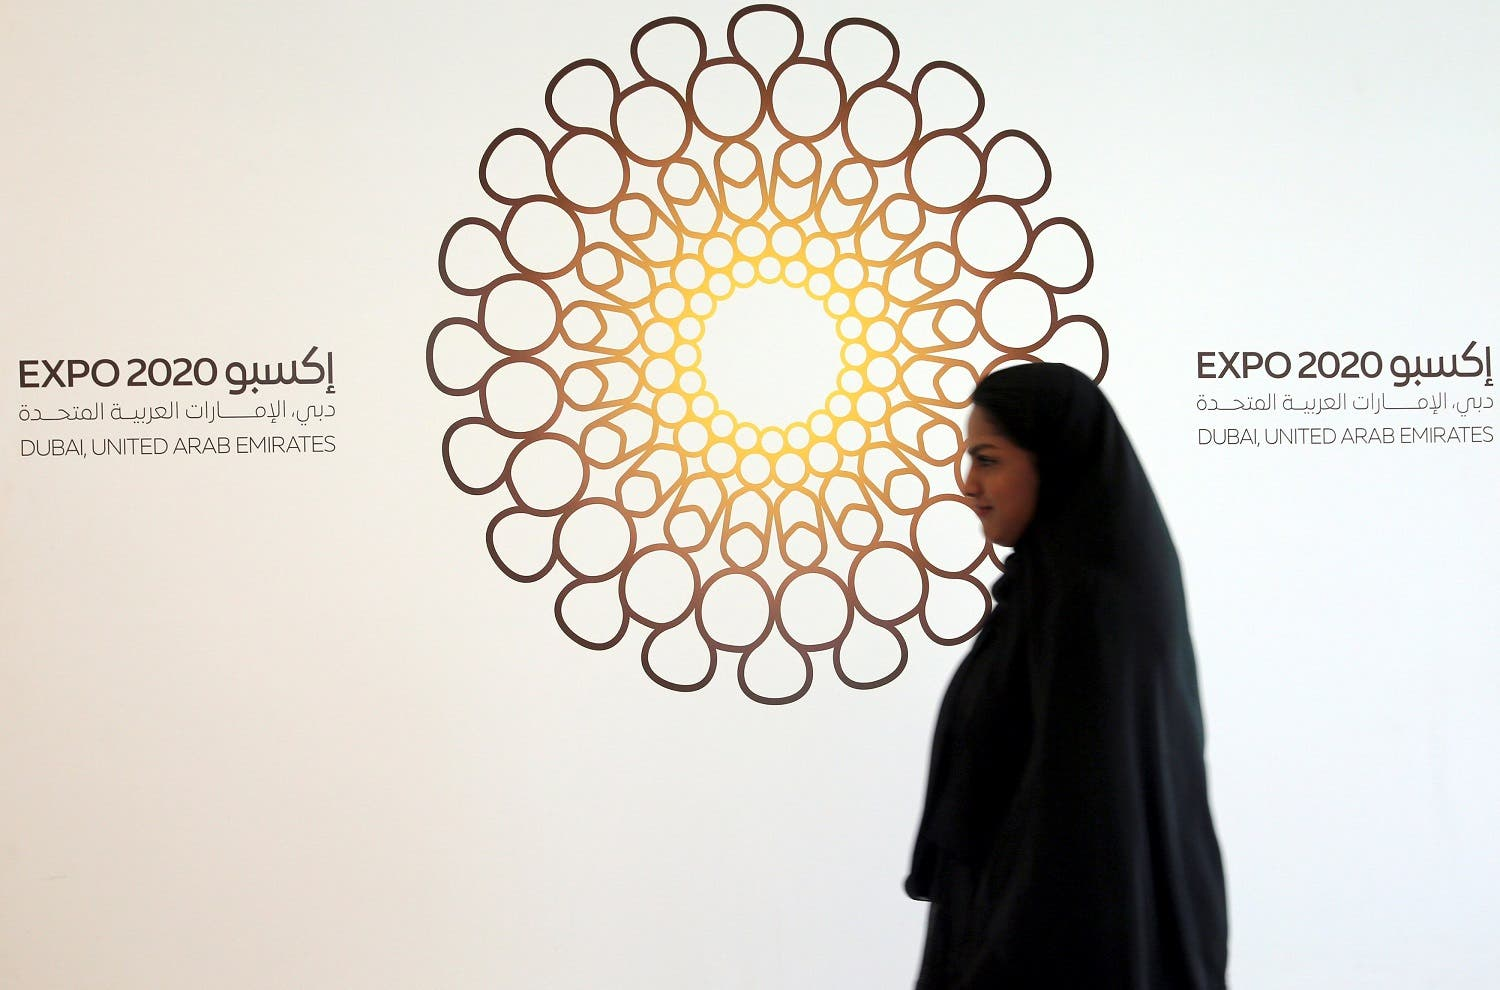 A woman walks past the logo of the Expo 2020 in Dubai, United Arab Emirates. (Reuters)